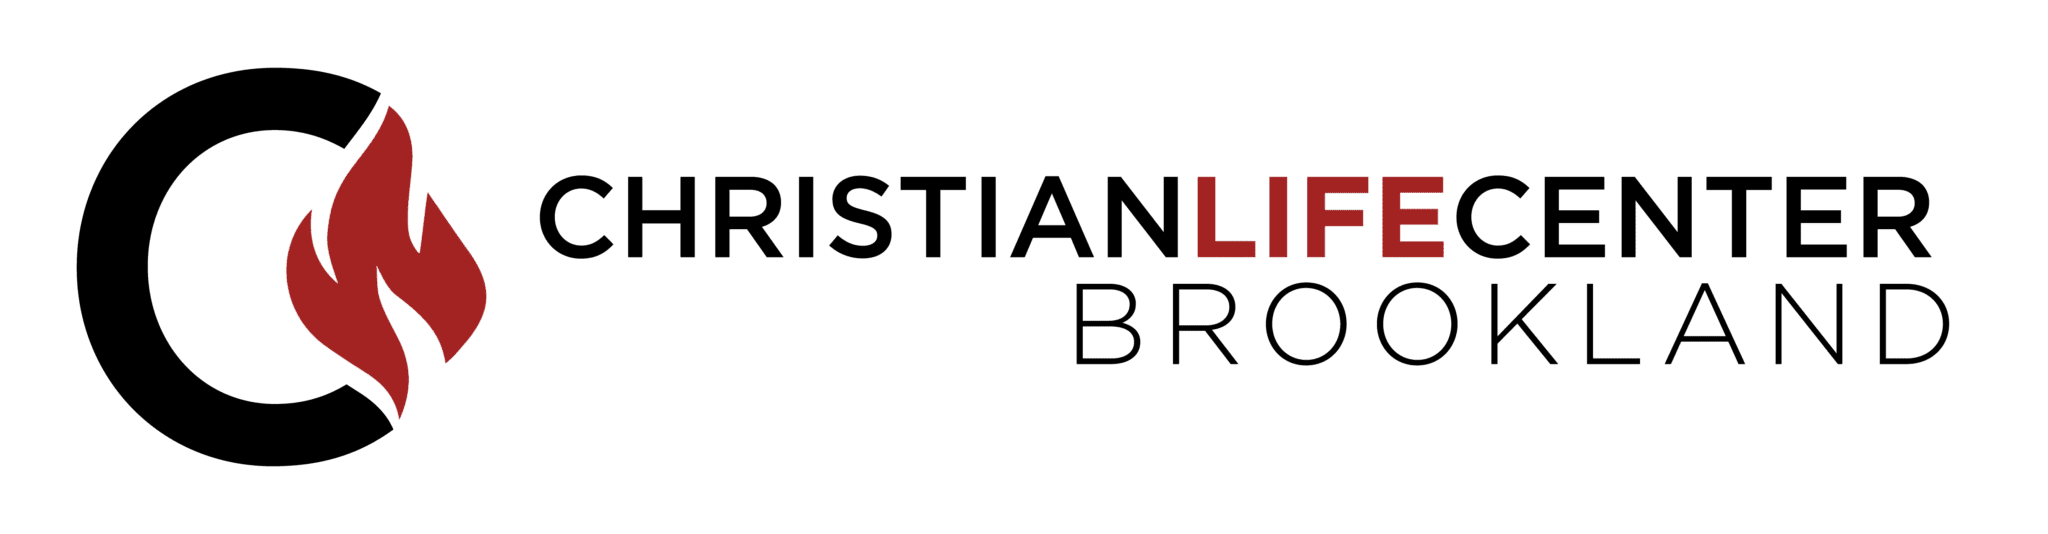 Christian Life Center of Brookland